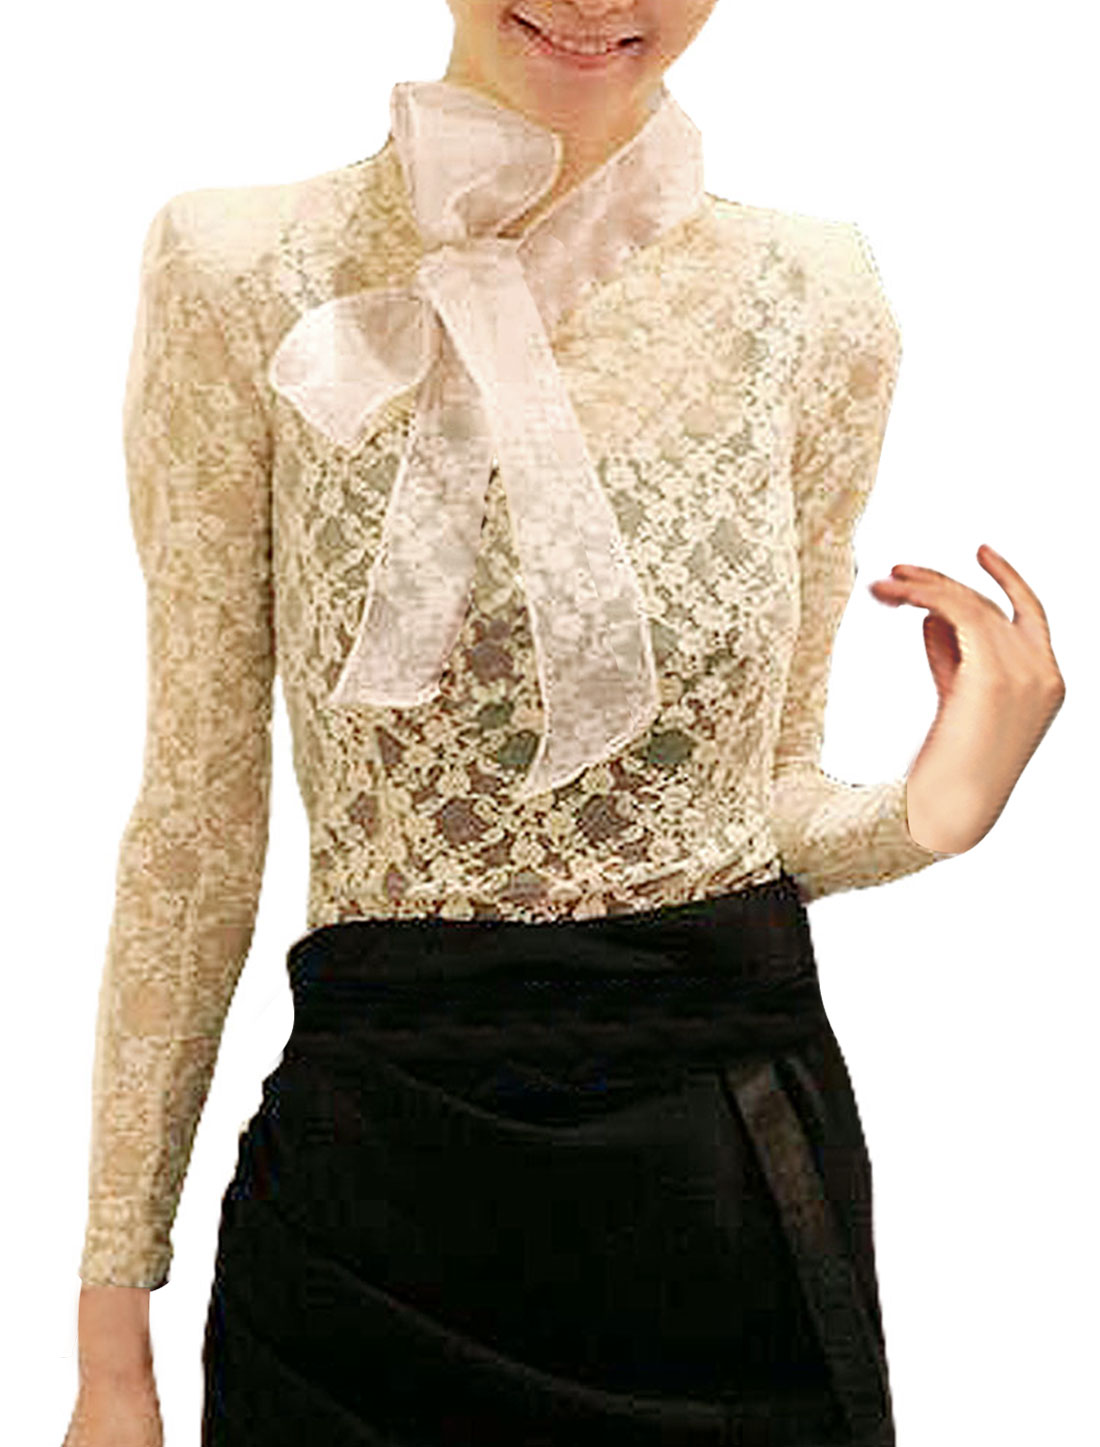 Woman Chic Beige All Over Semi-Sheer Lace Design Causal Top Shirt L